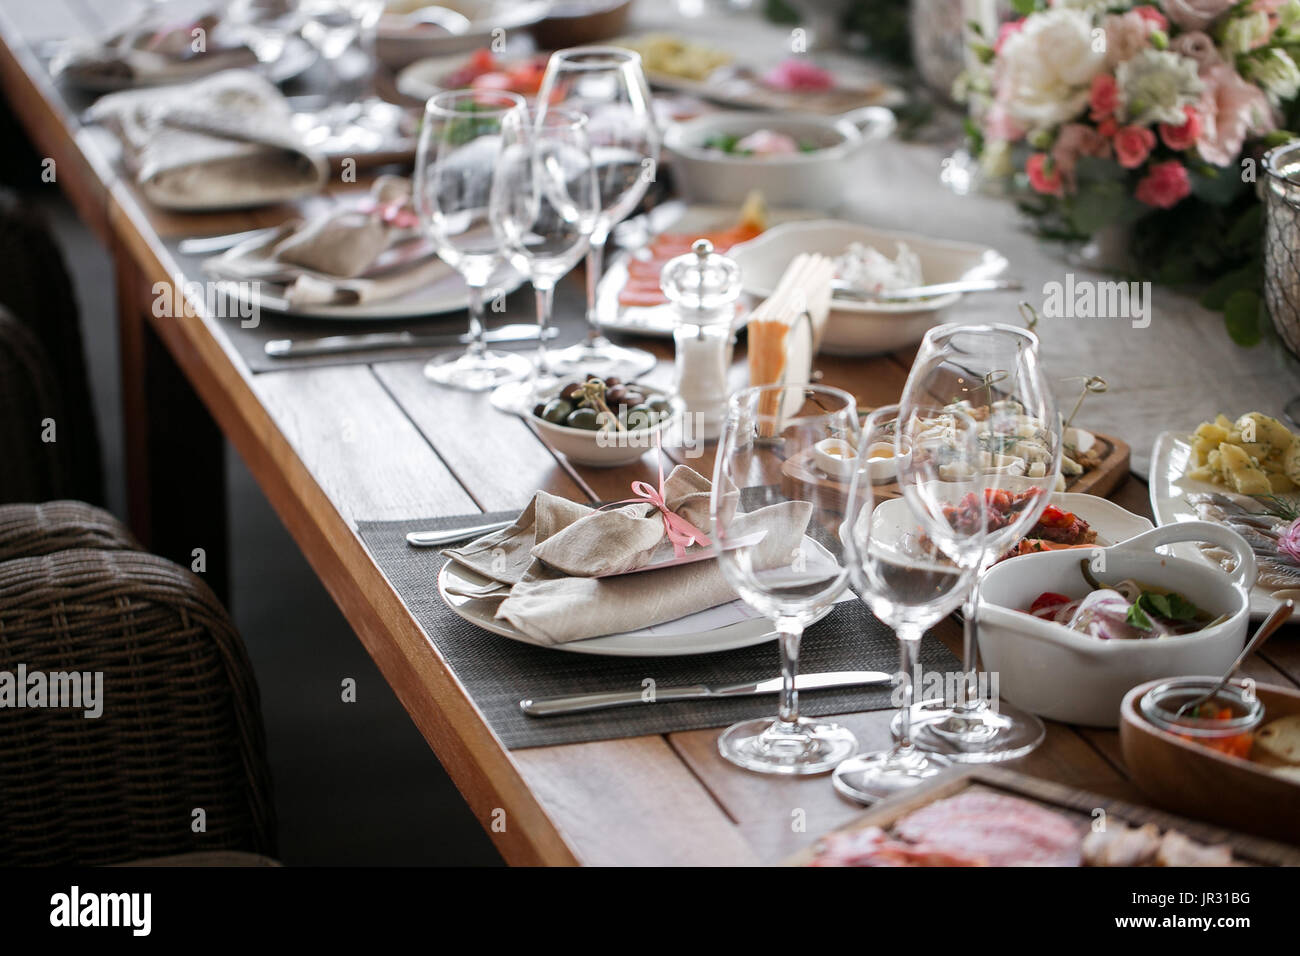 linen textile. Decorated table, a plate of neatly arranged napkin, fork and knife. - Stock Image